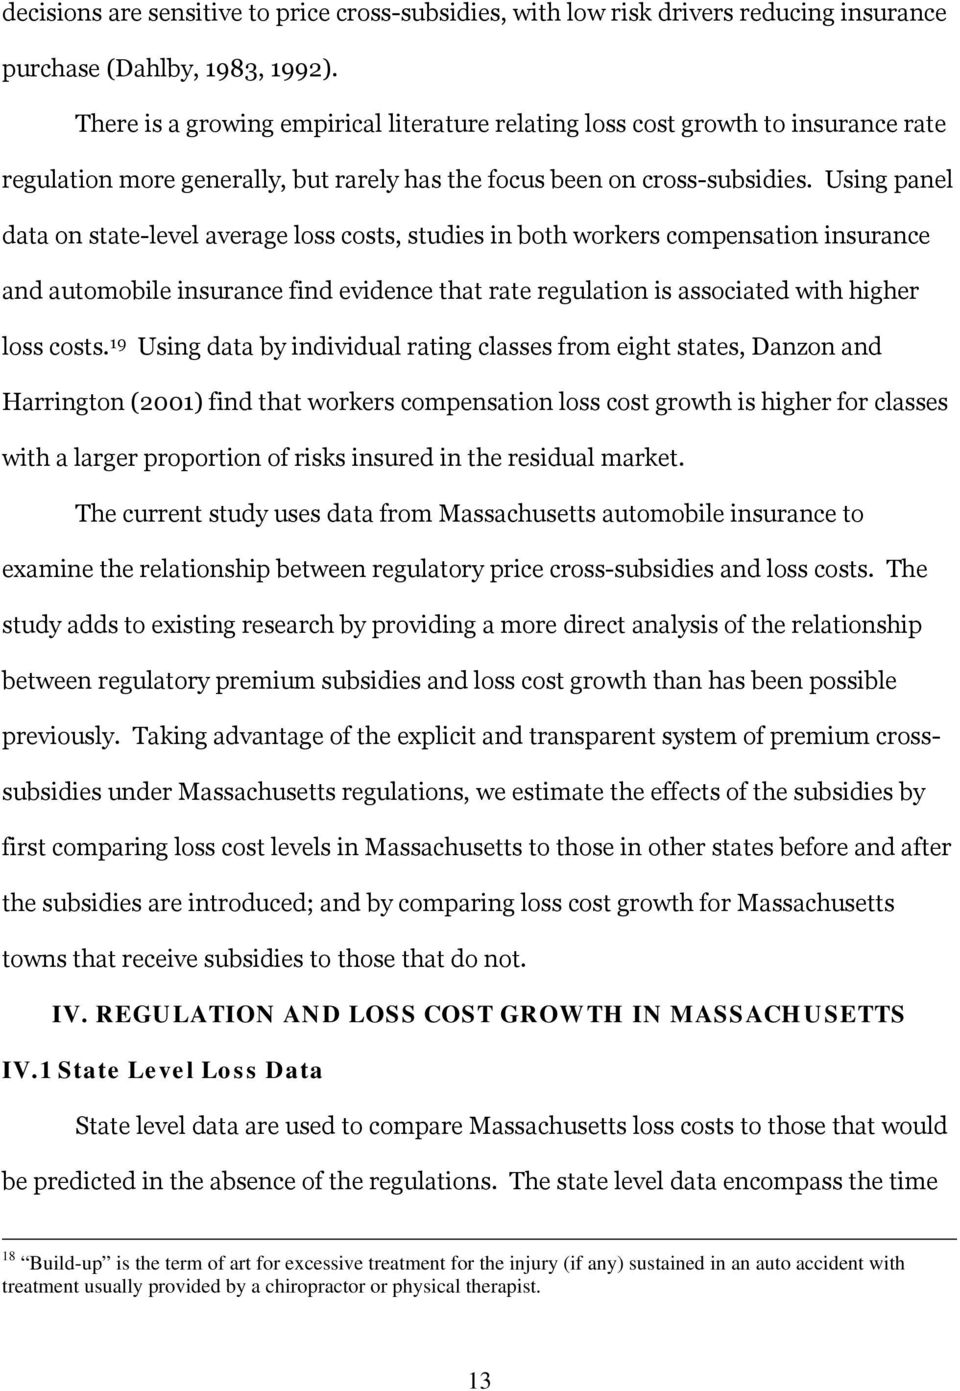 Using panel data on state-level average loss costs, studies in both workers compensation insurance and automobile insurance find evidence that rate regulation is associated with higher loss costs.